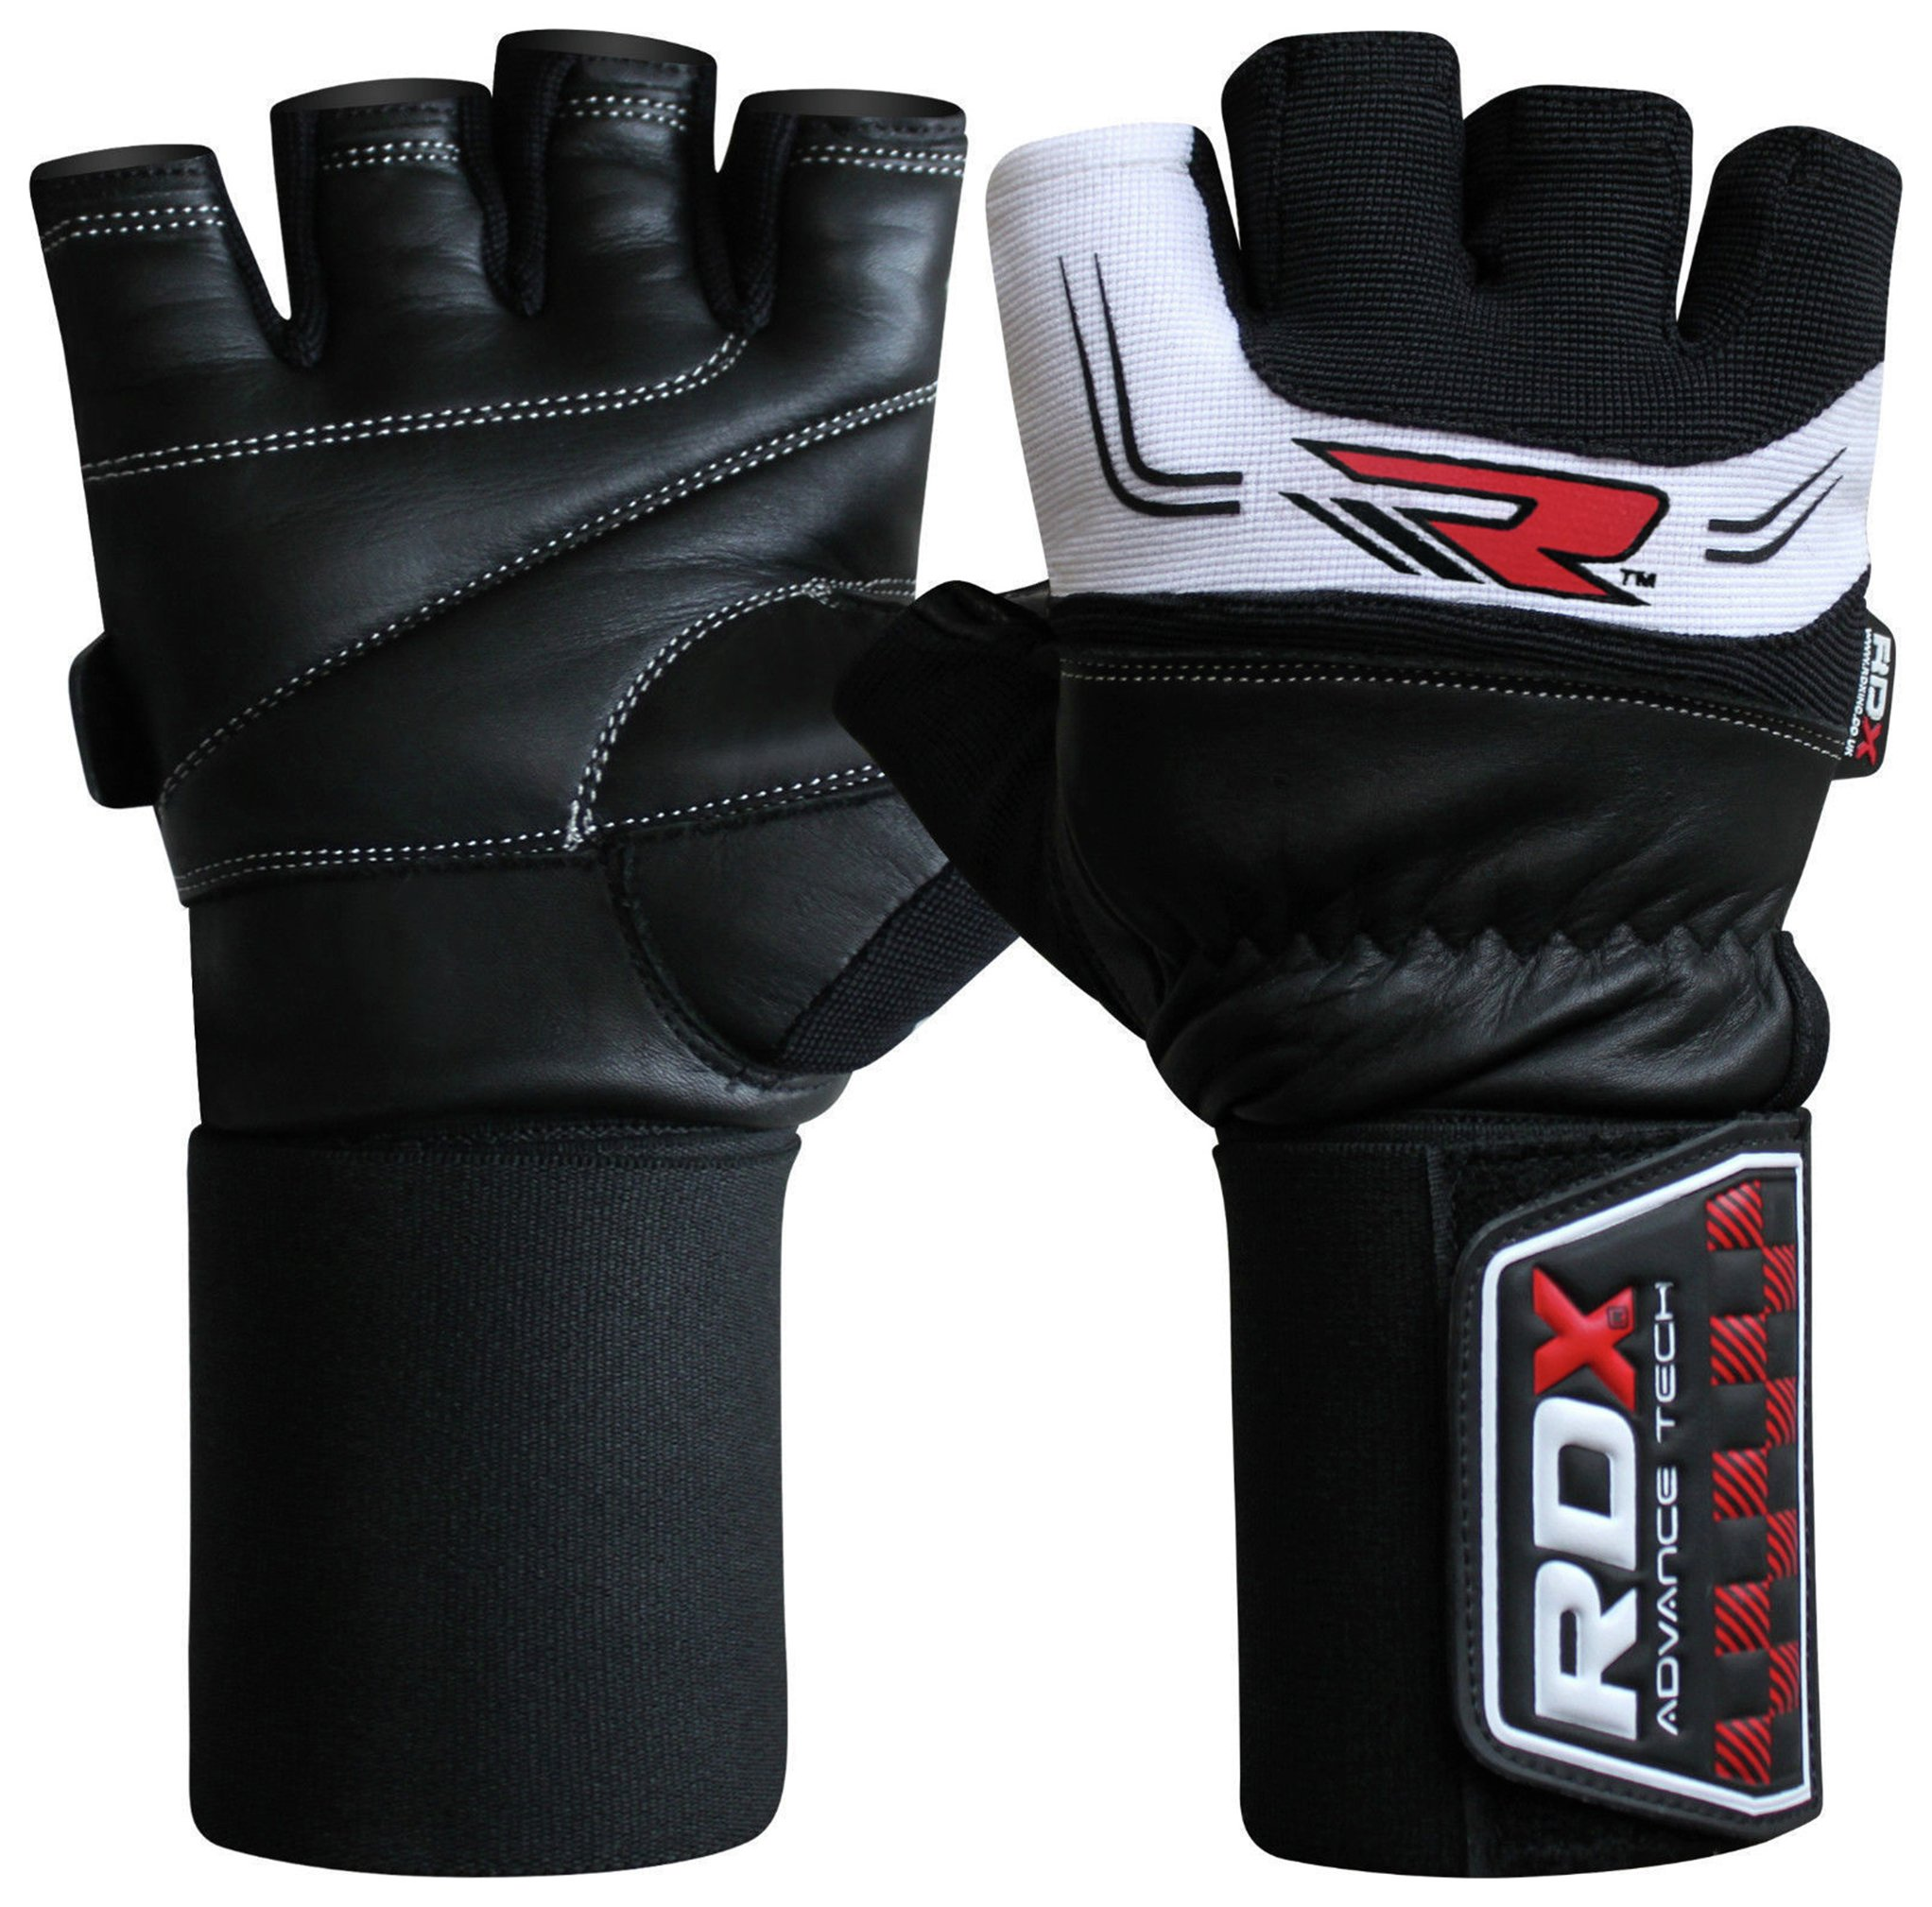 Fitness Gloves Argos: Medium To Large Weight Lifting Gloves Review